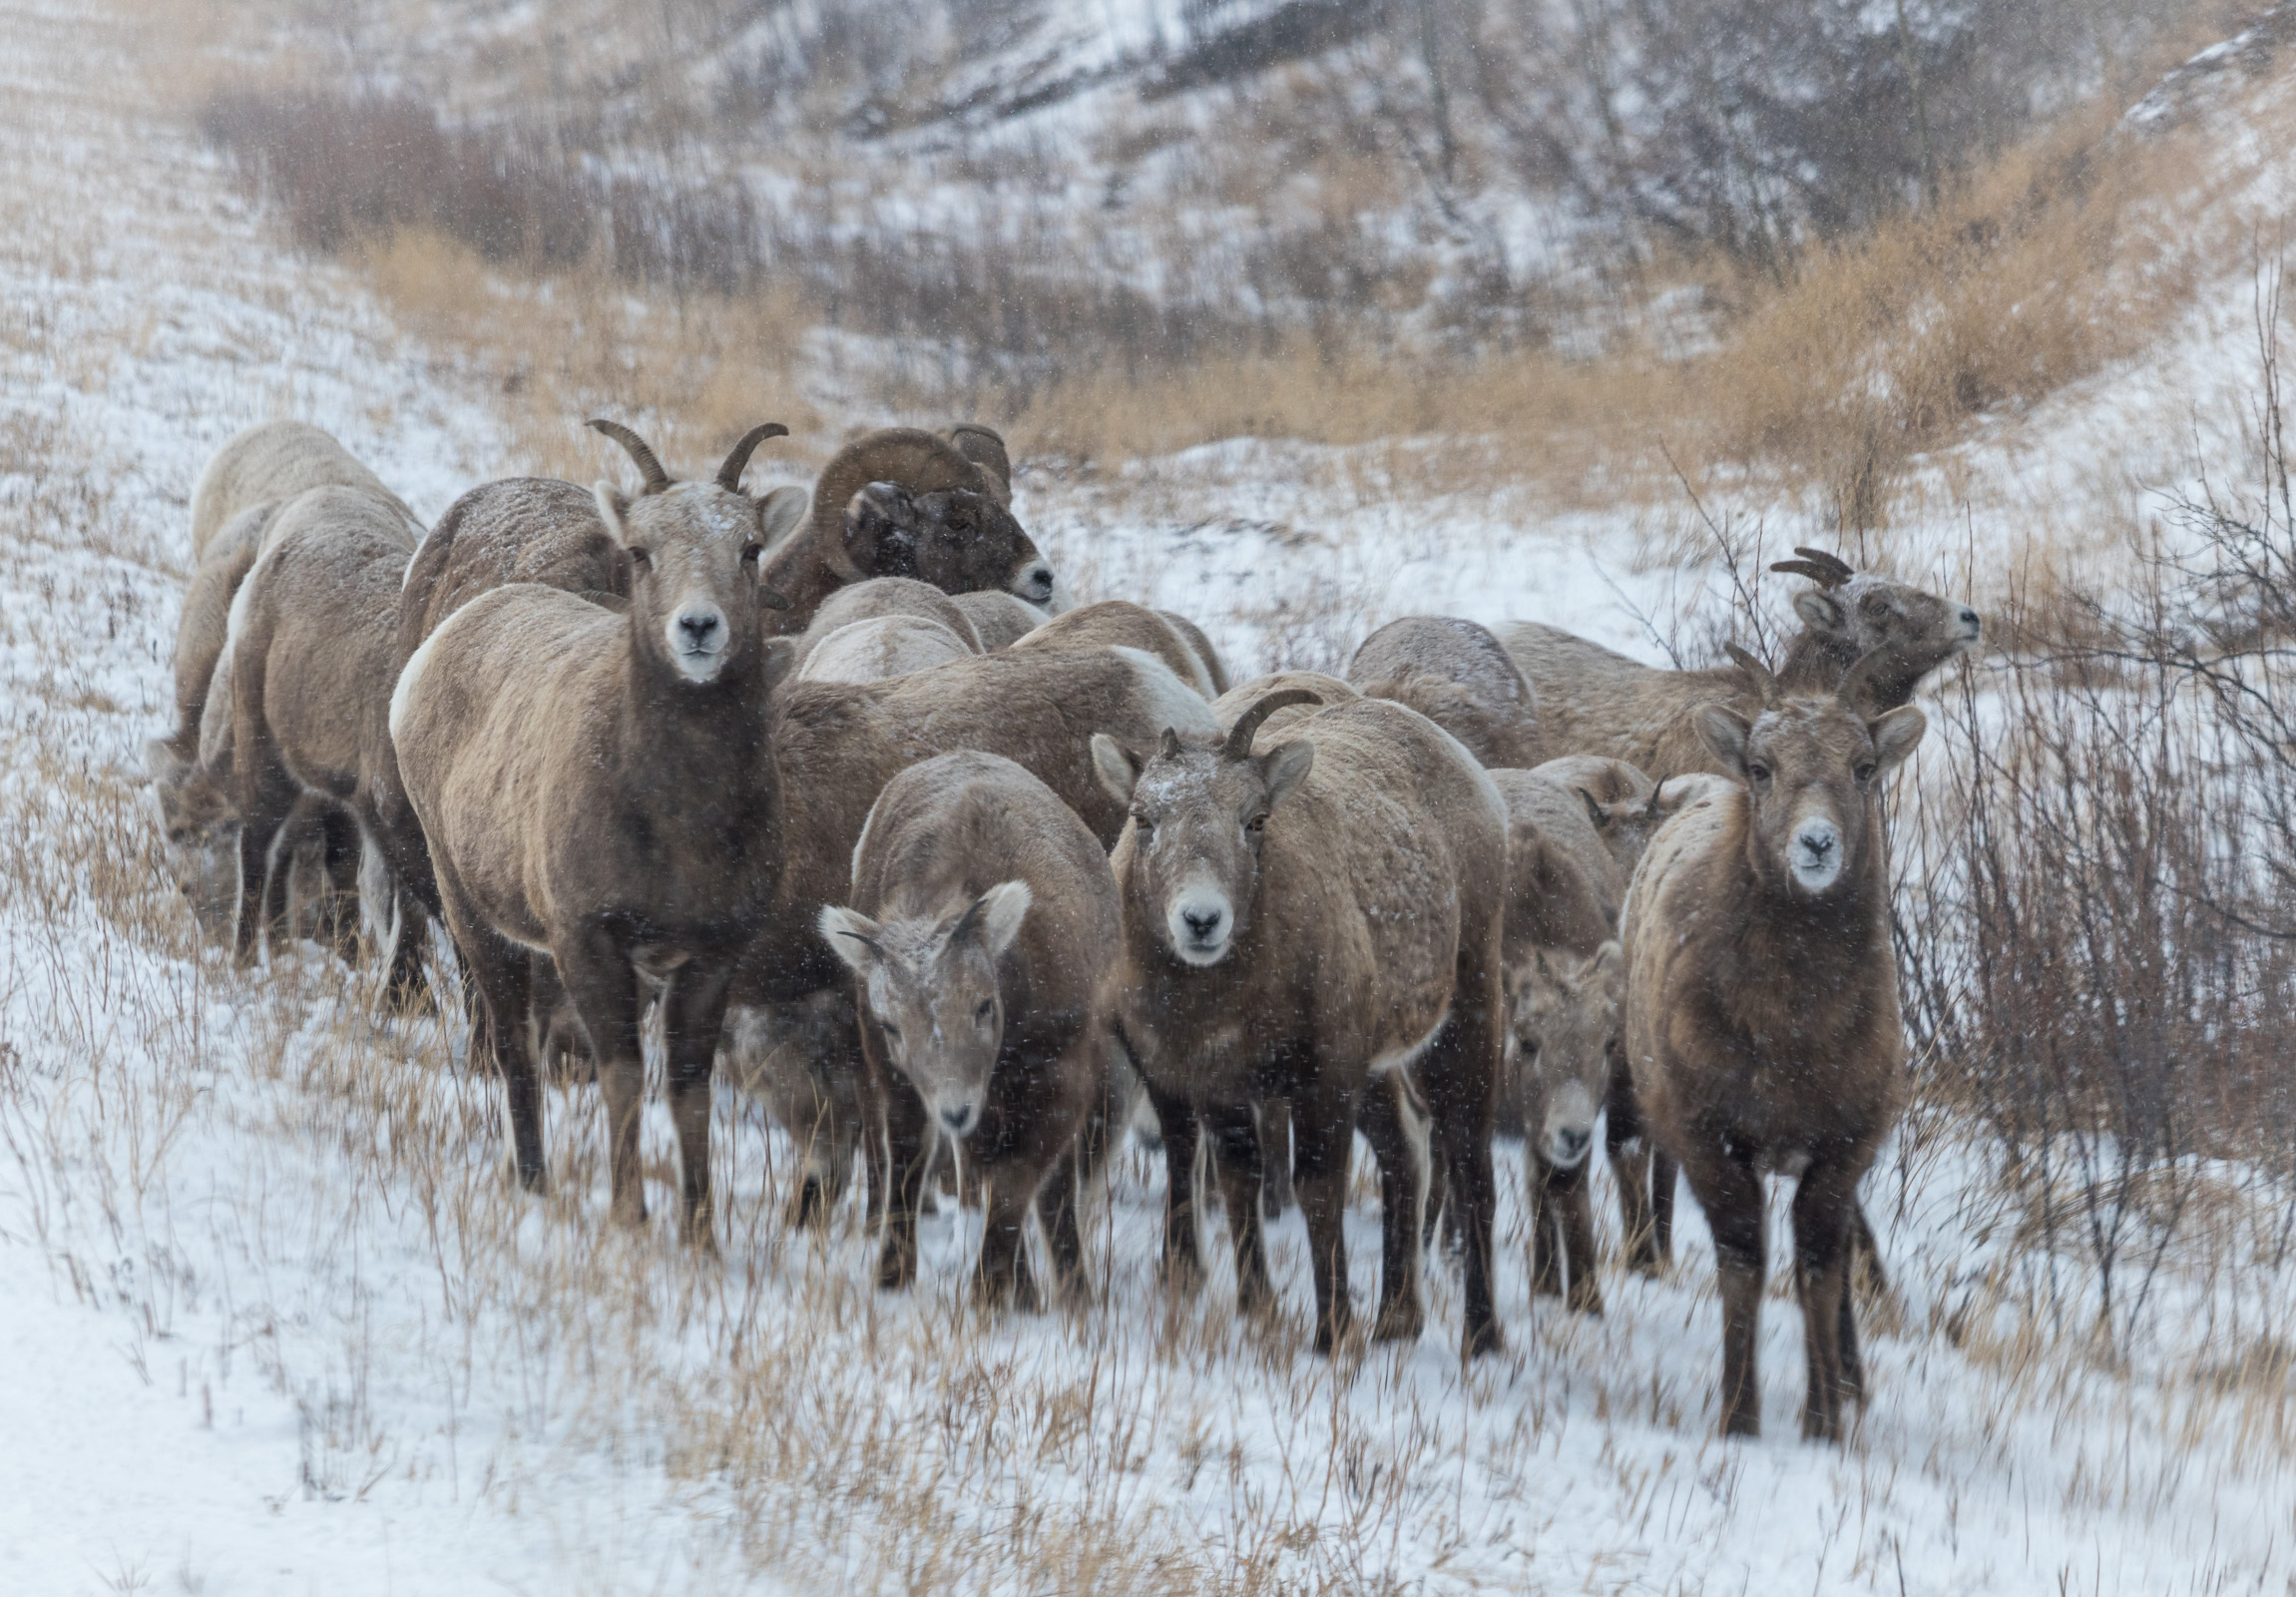 A huddle of bighorns, Canada